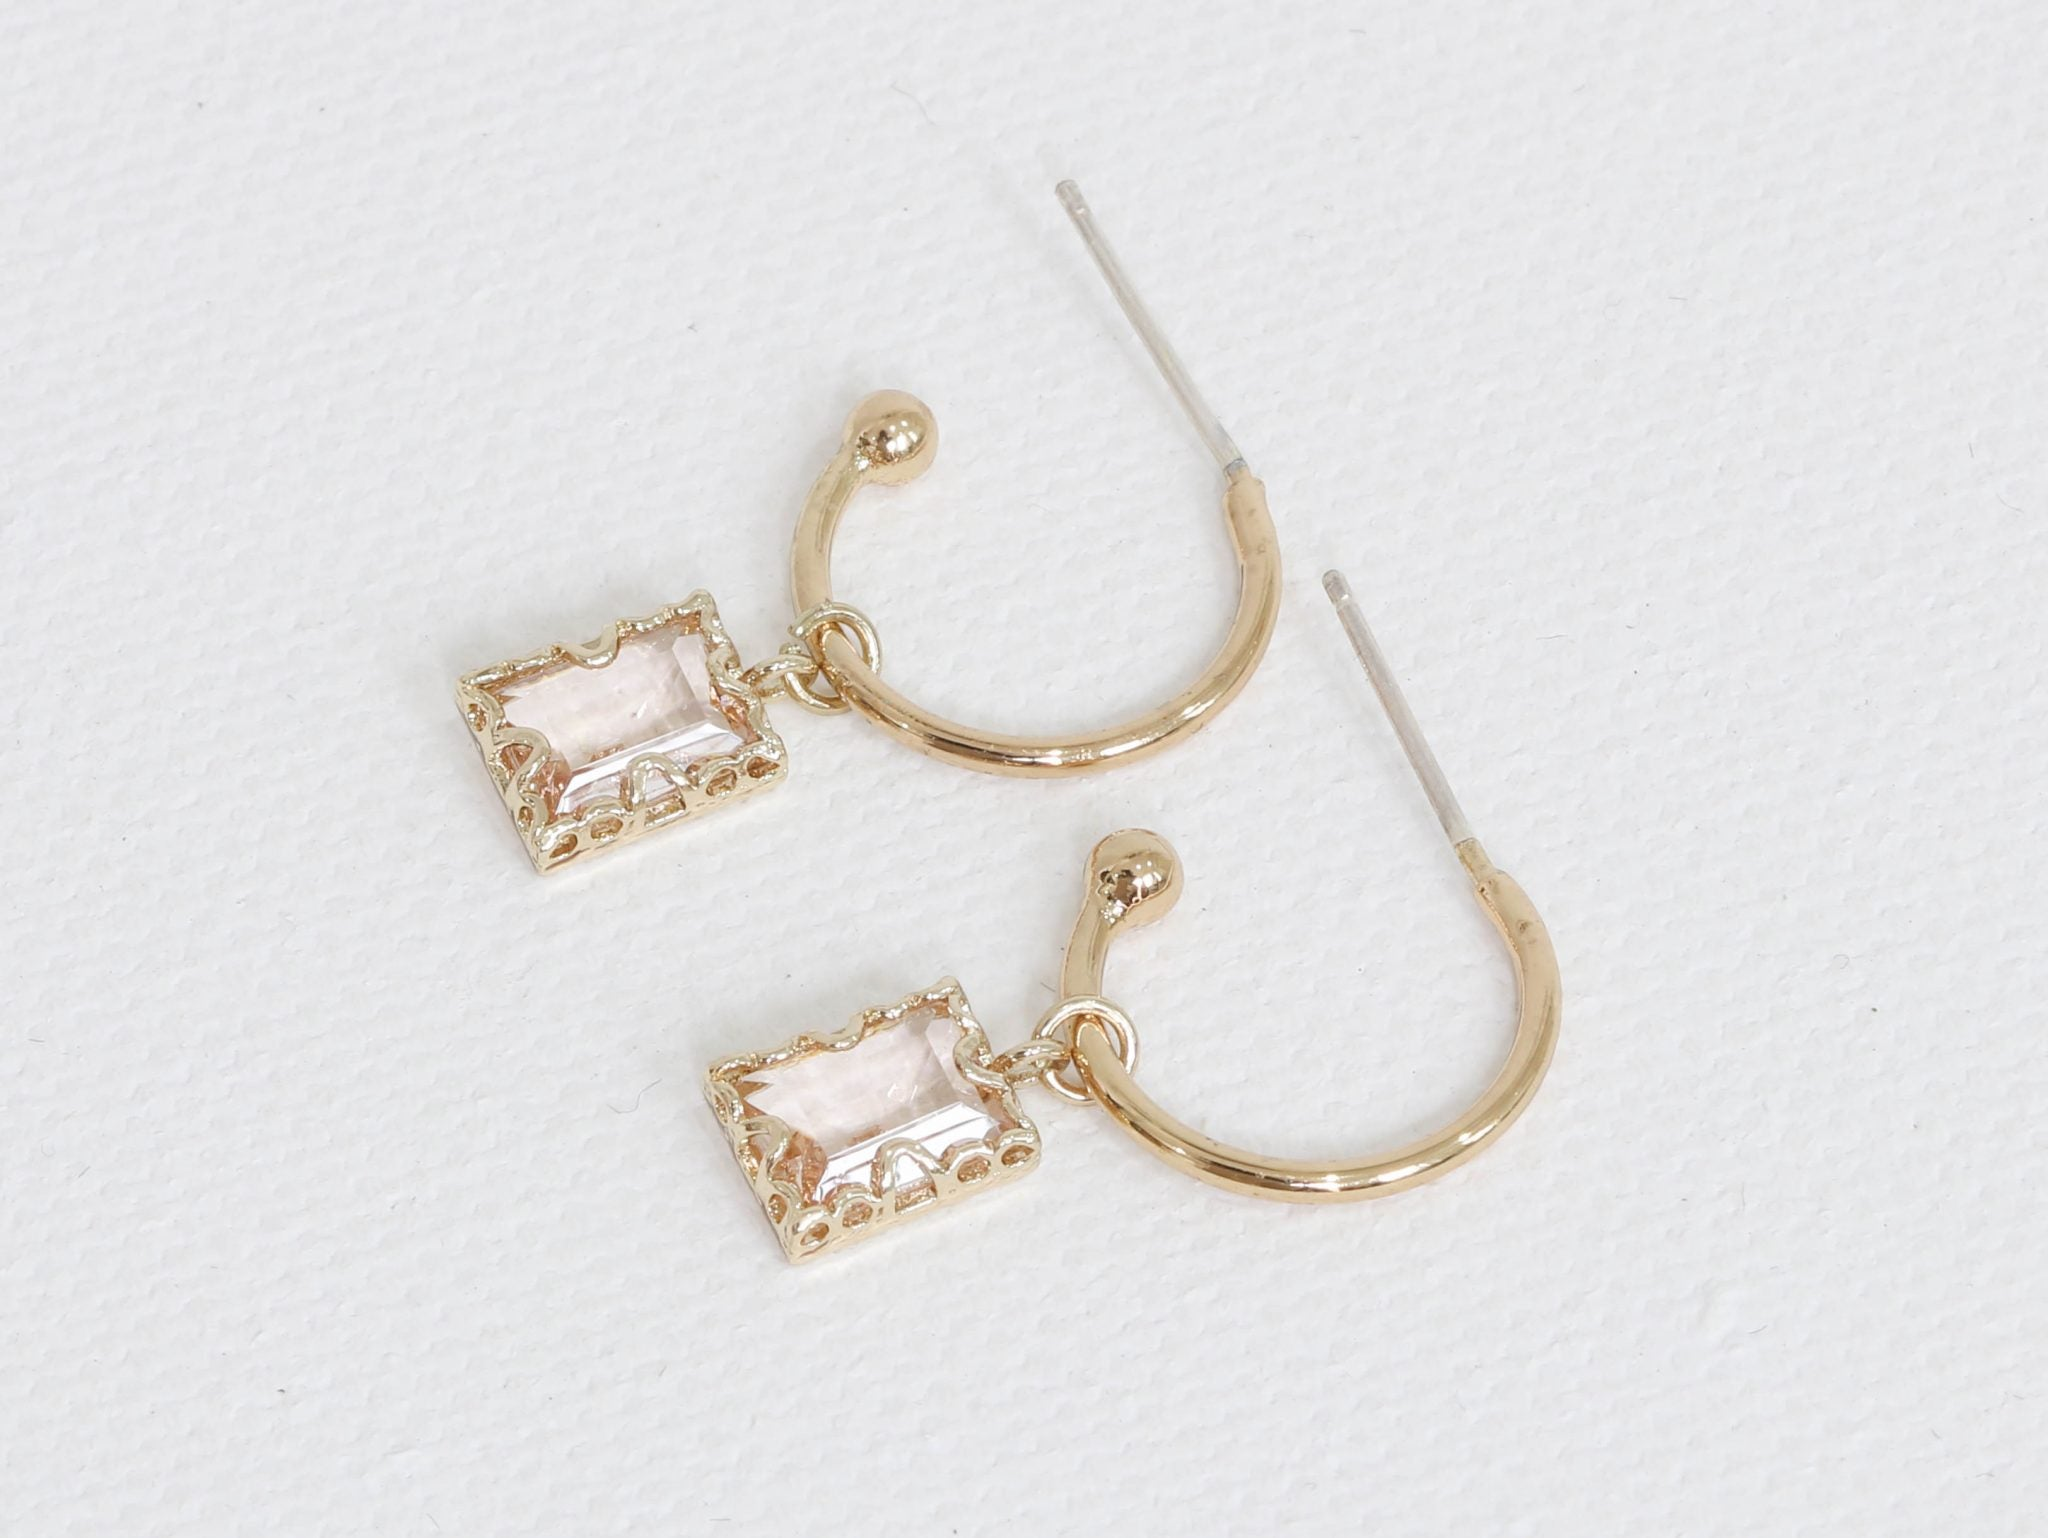 Small gold hoop earrings with pink crystals